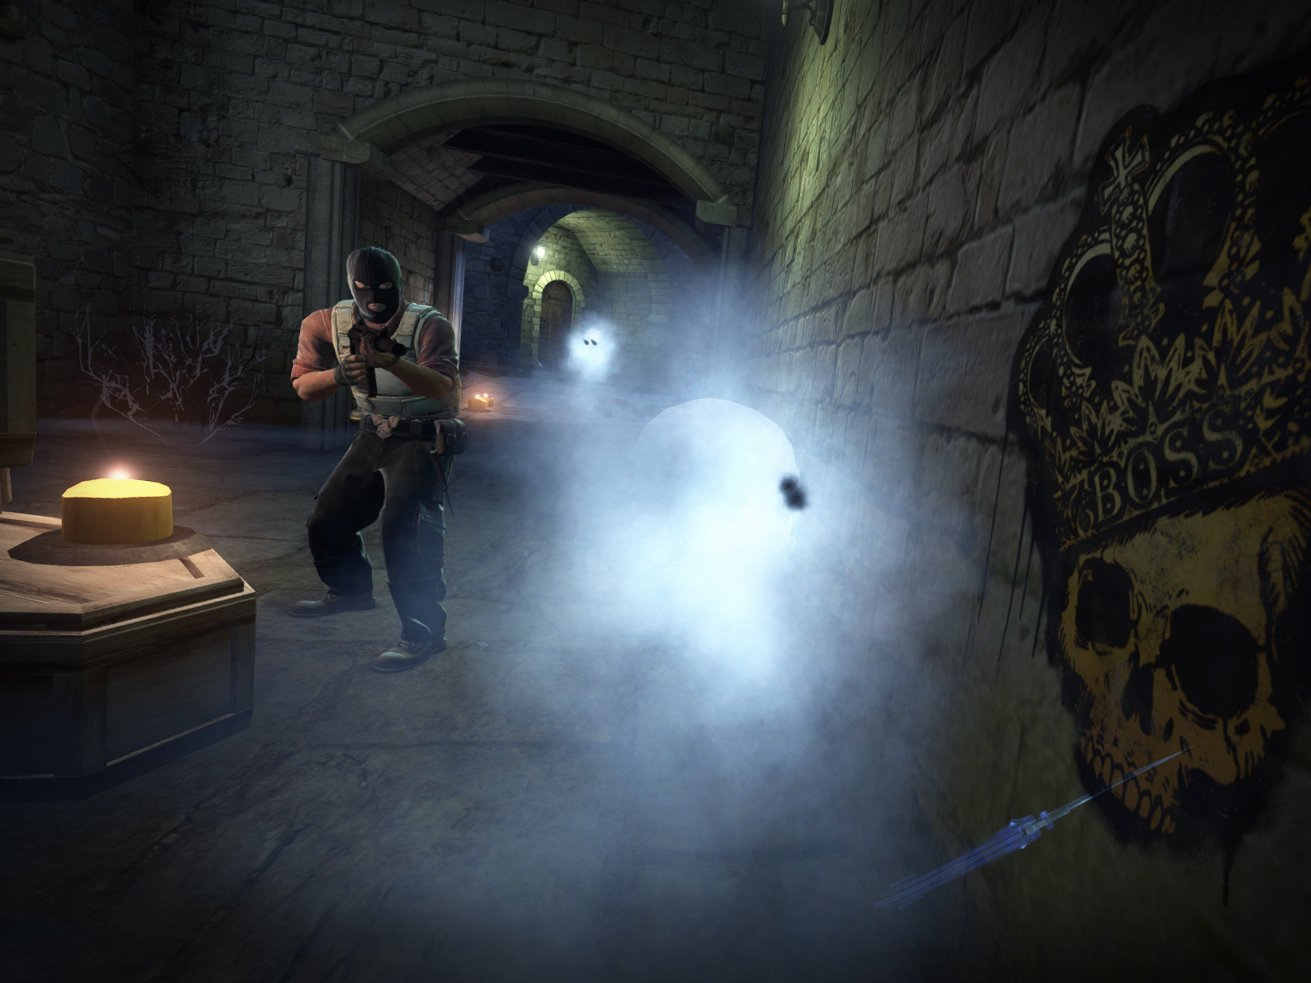 CS:GO 10/23 update decorates Cobblestone for Halloween